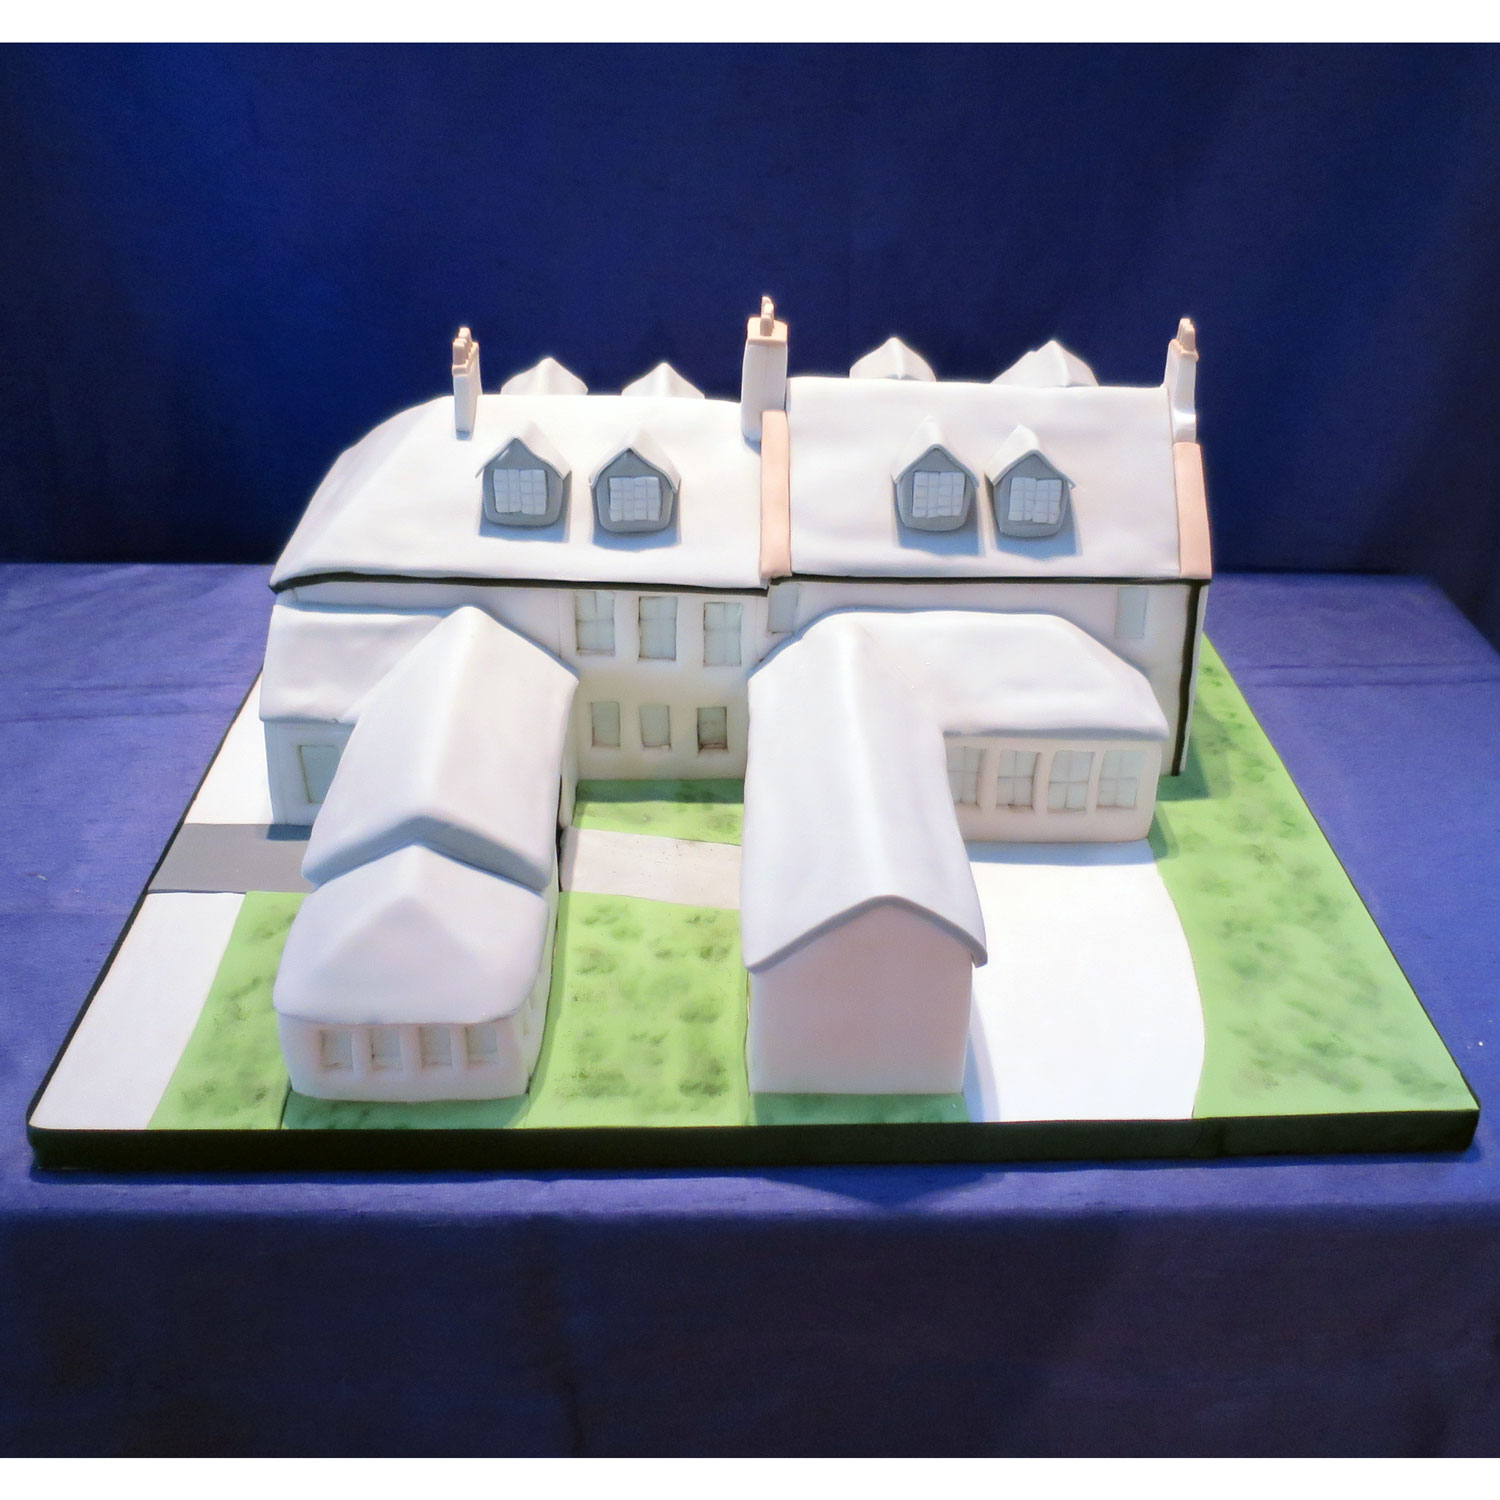 Back View of the Loch Lomond Arms Hotel Cake